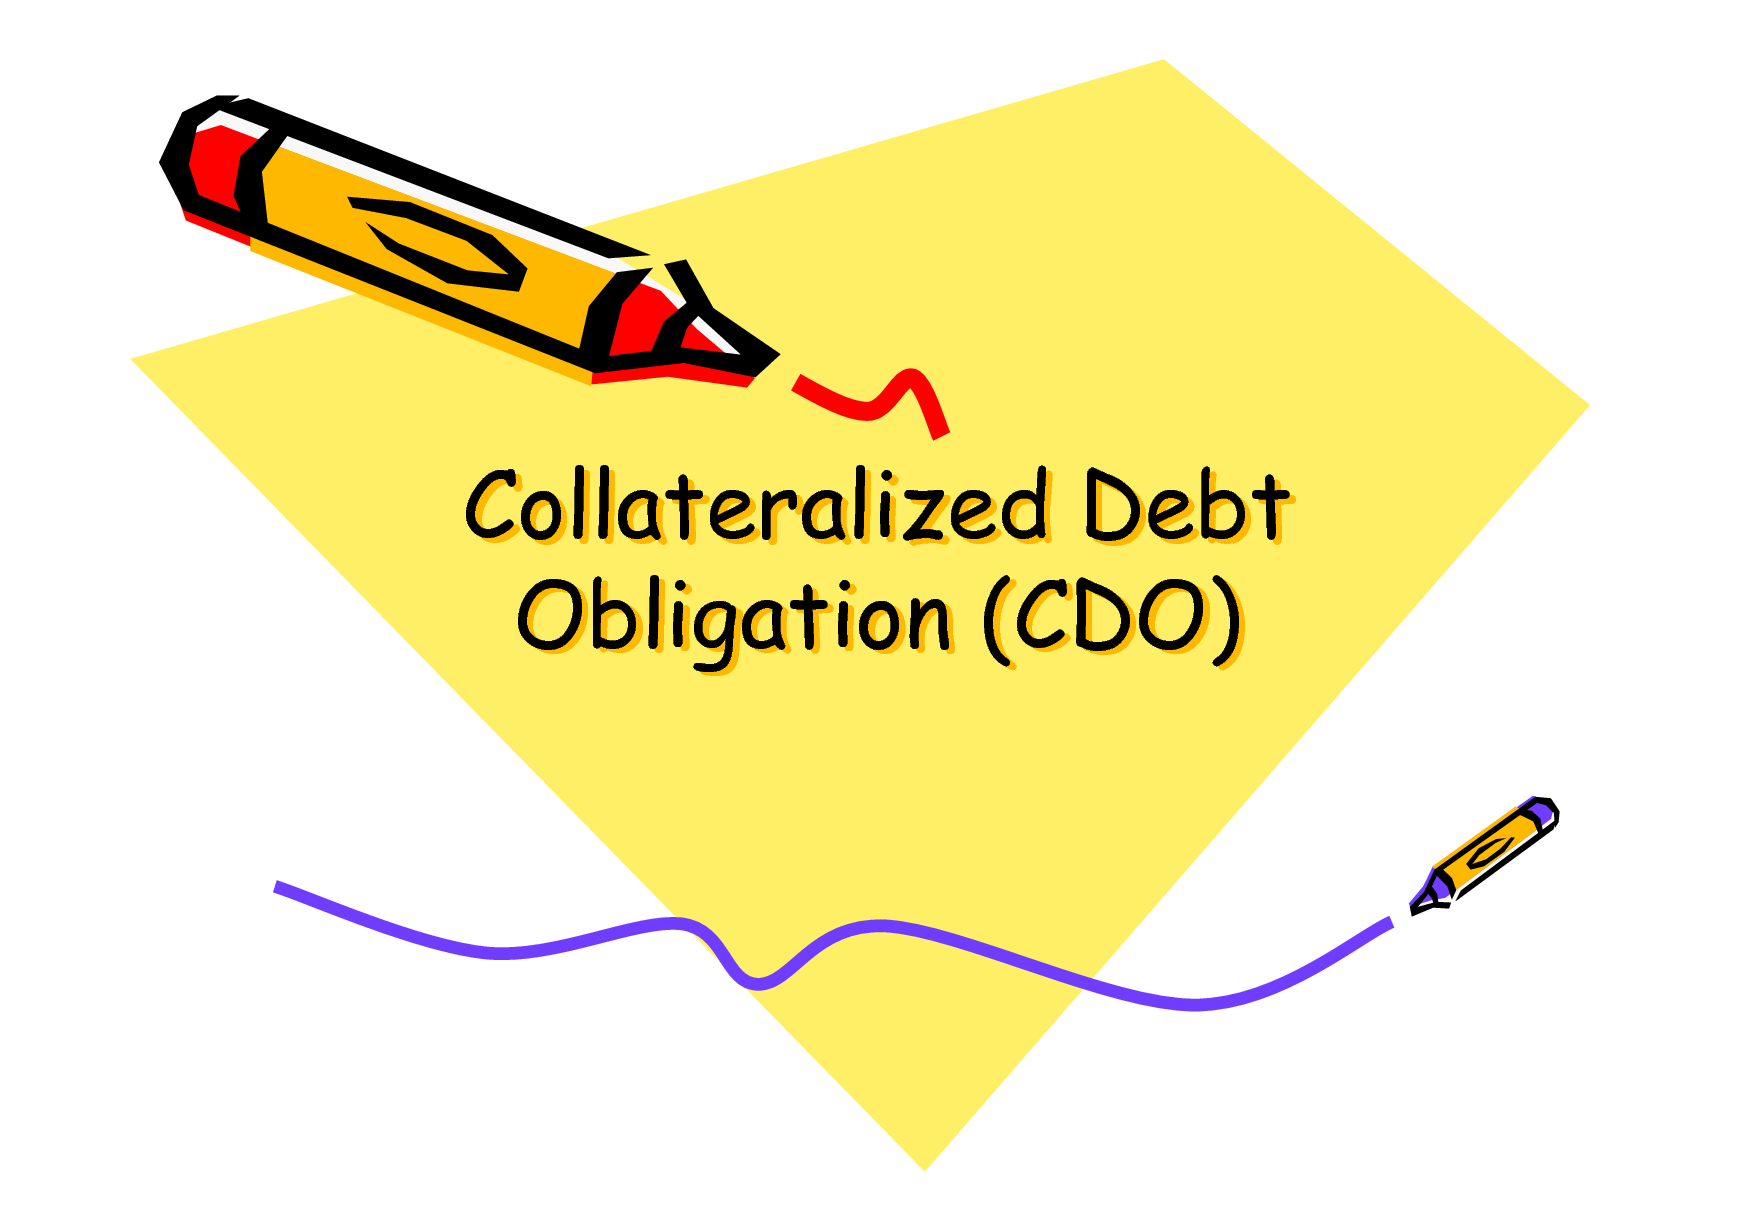 Сollateralized debt obligation